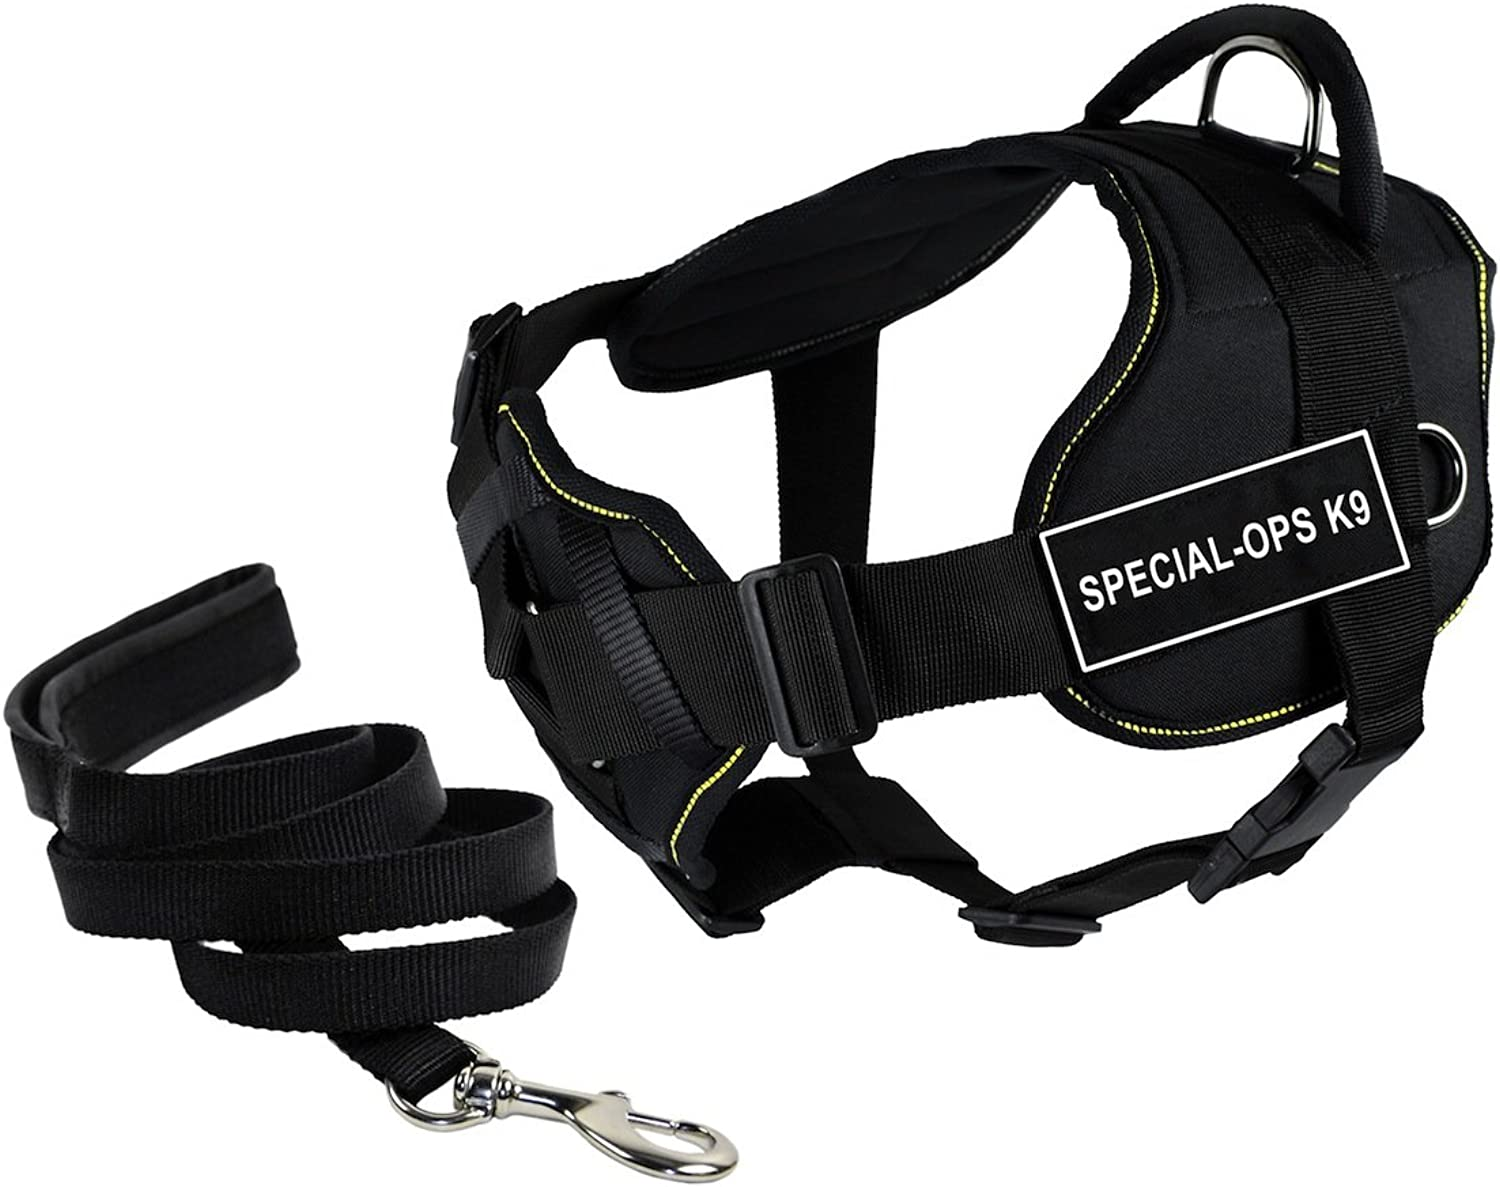 Dean & Tyler's DT Fun Chest Support SPECIALOPS K9 Harness, Small, with 6 ft Padded Puppy Leash.